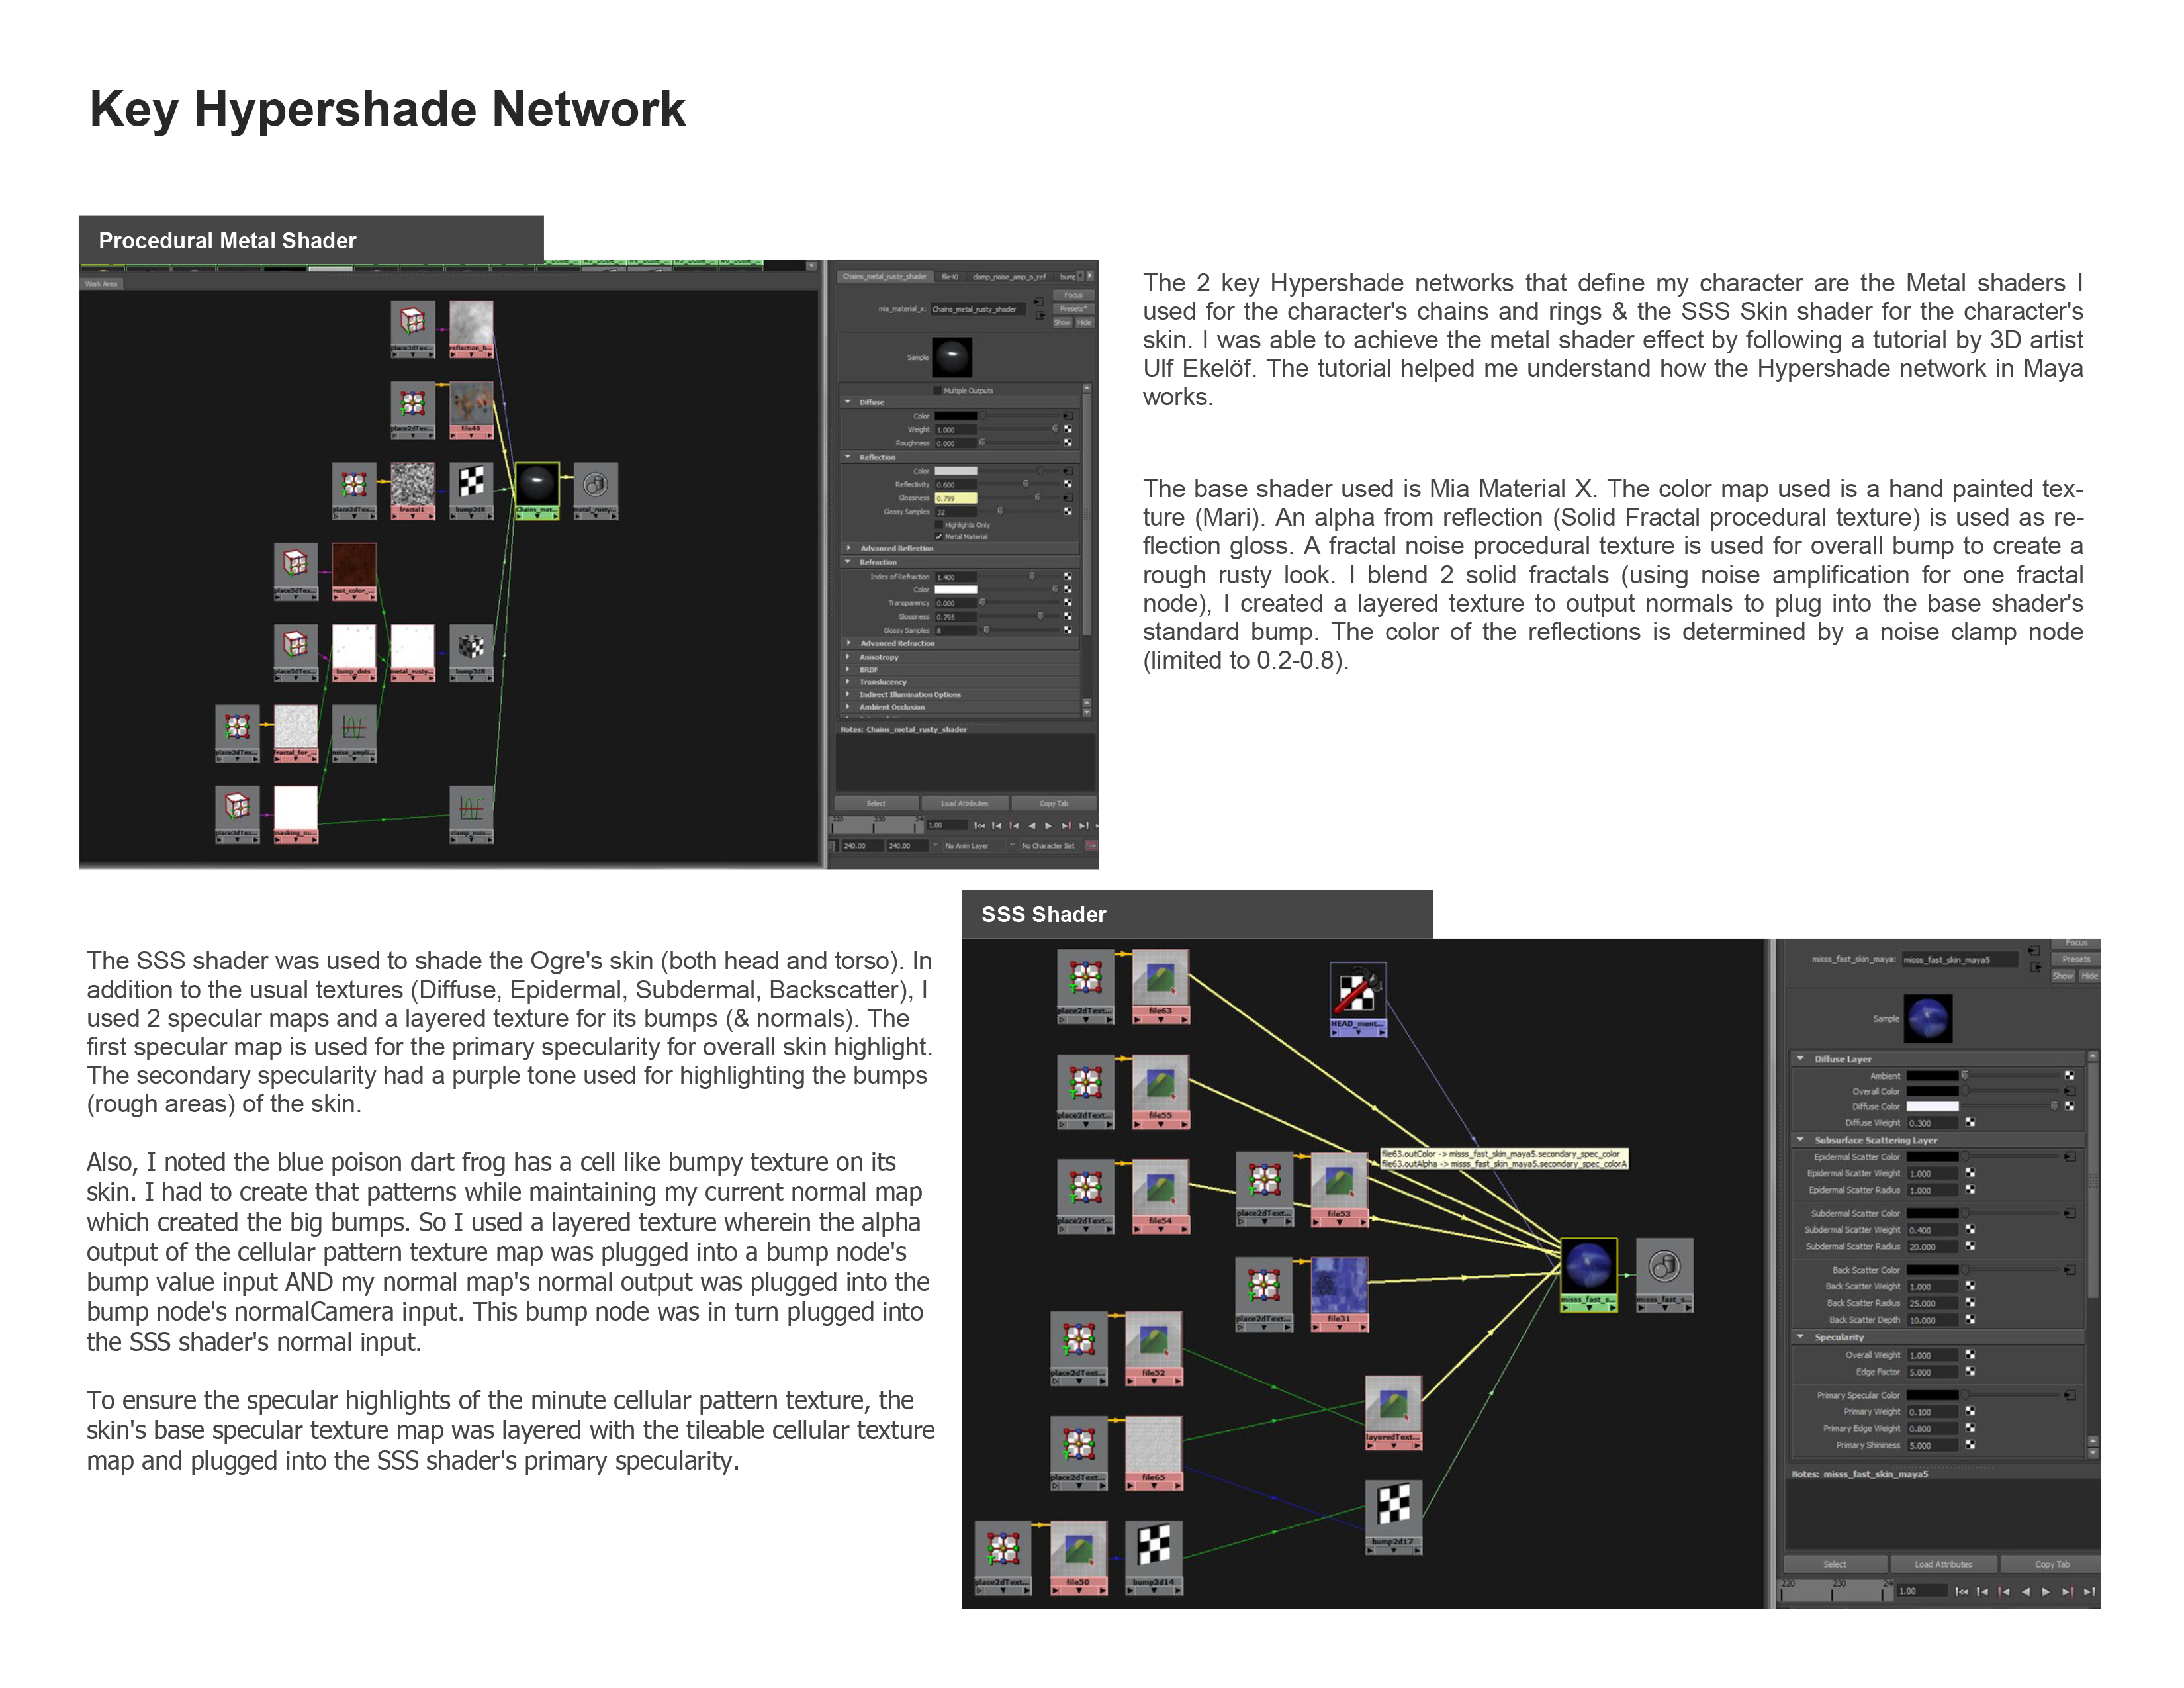 Key Hypershade Network (Maya)